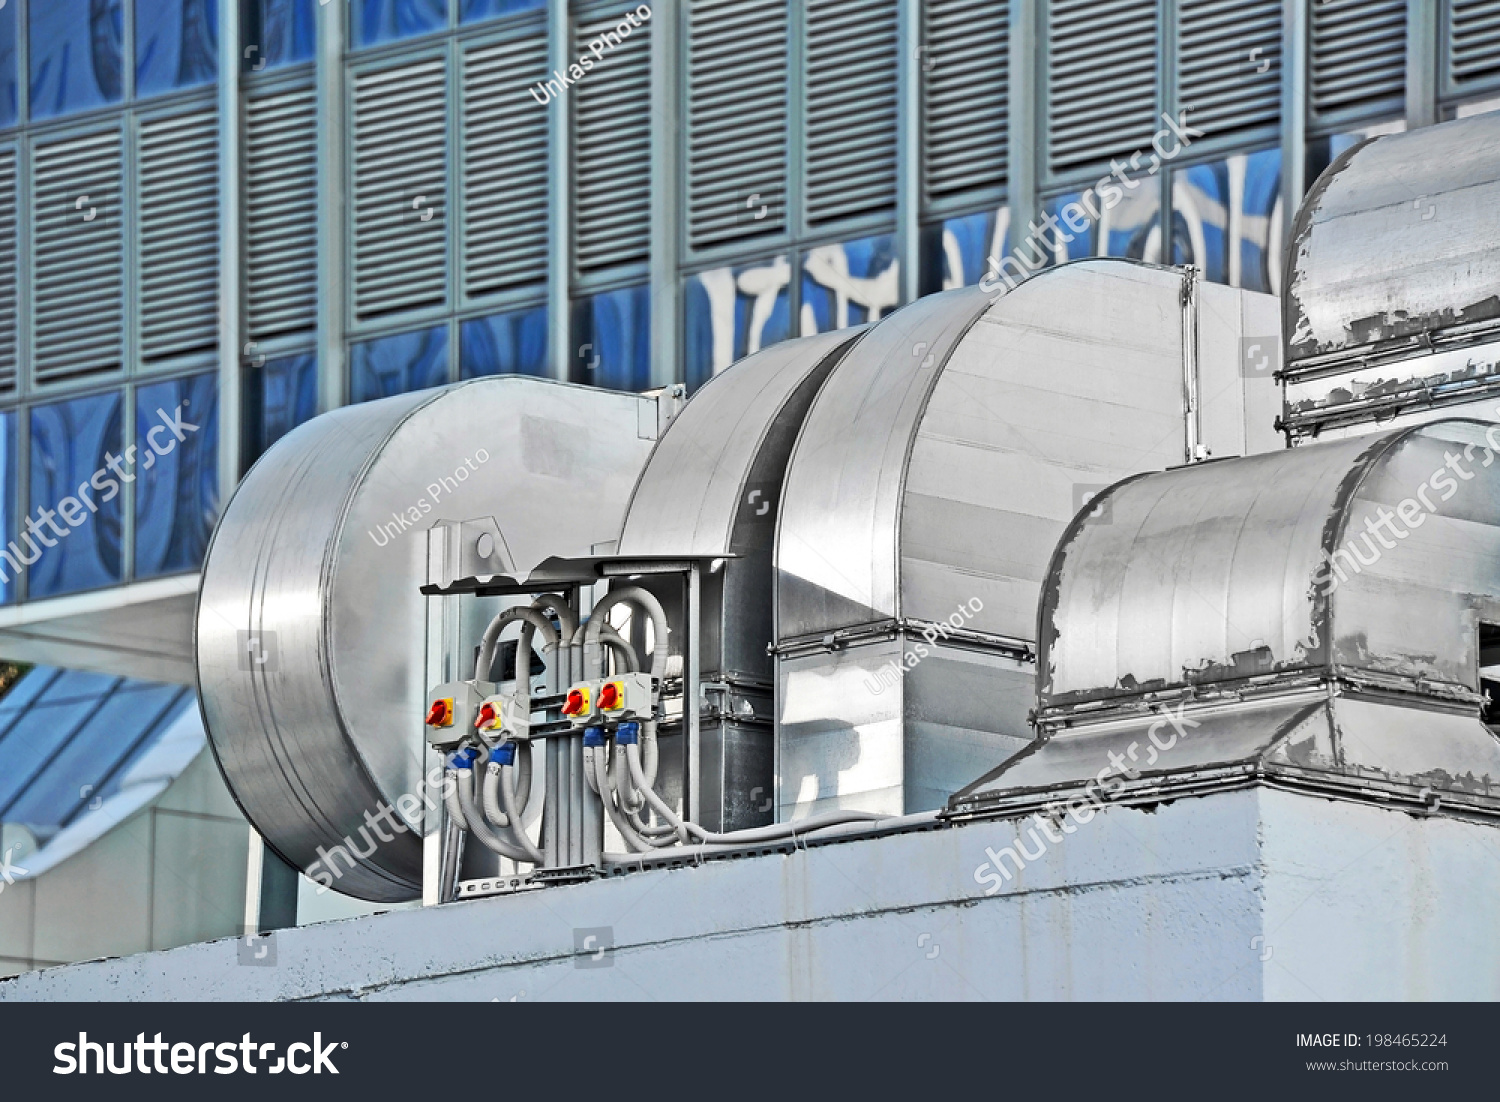 Industrial Air Systems : Industrial air conditioning ventilation systems on stock